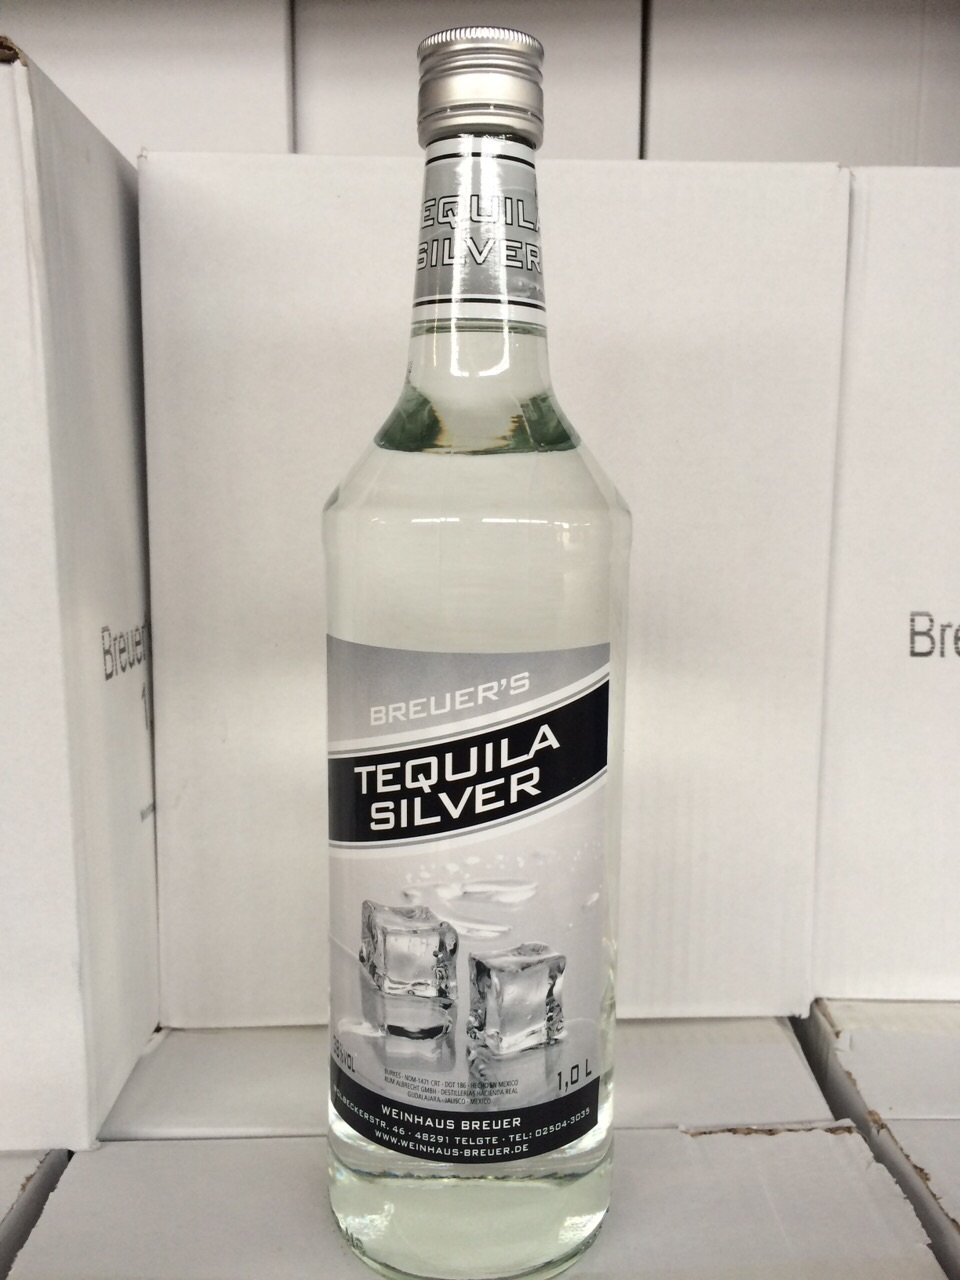 Breuers Tequila silber